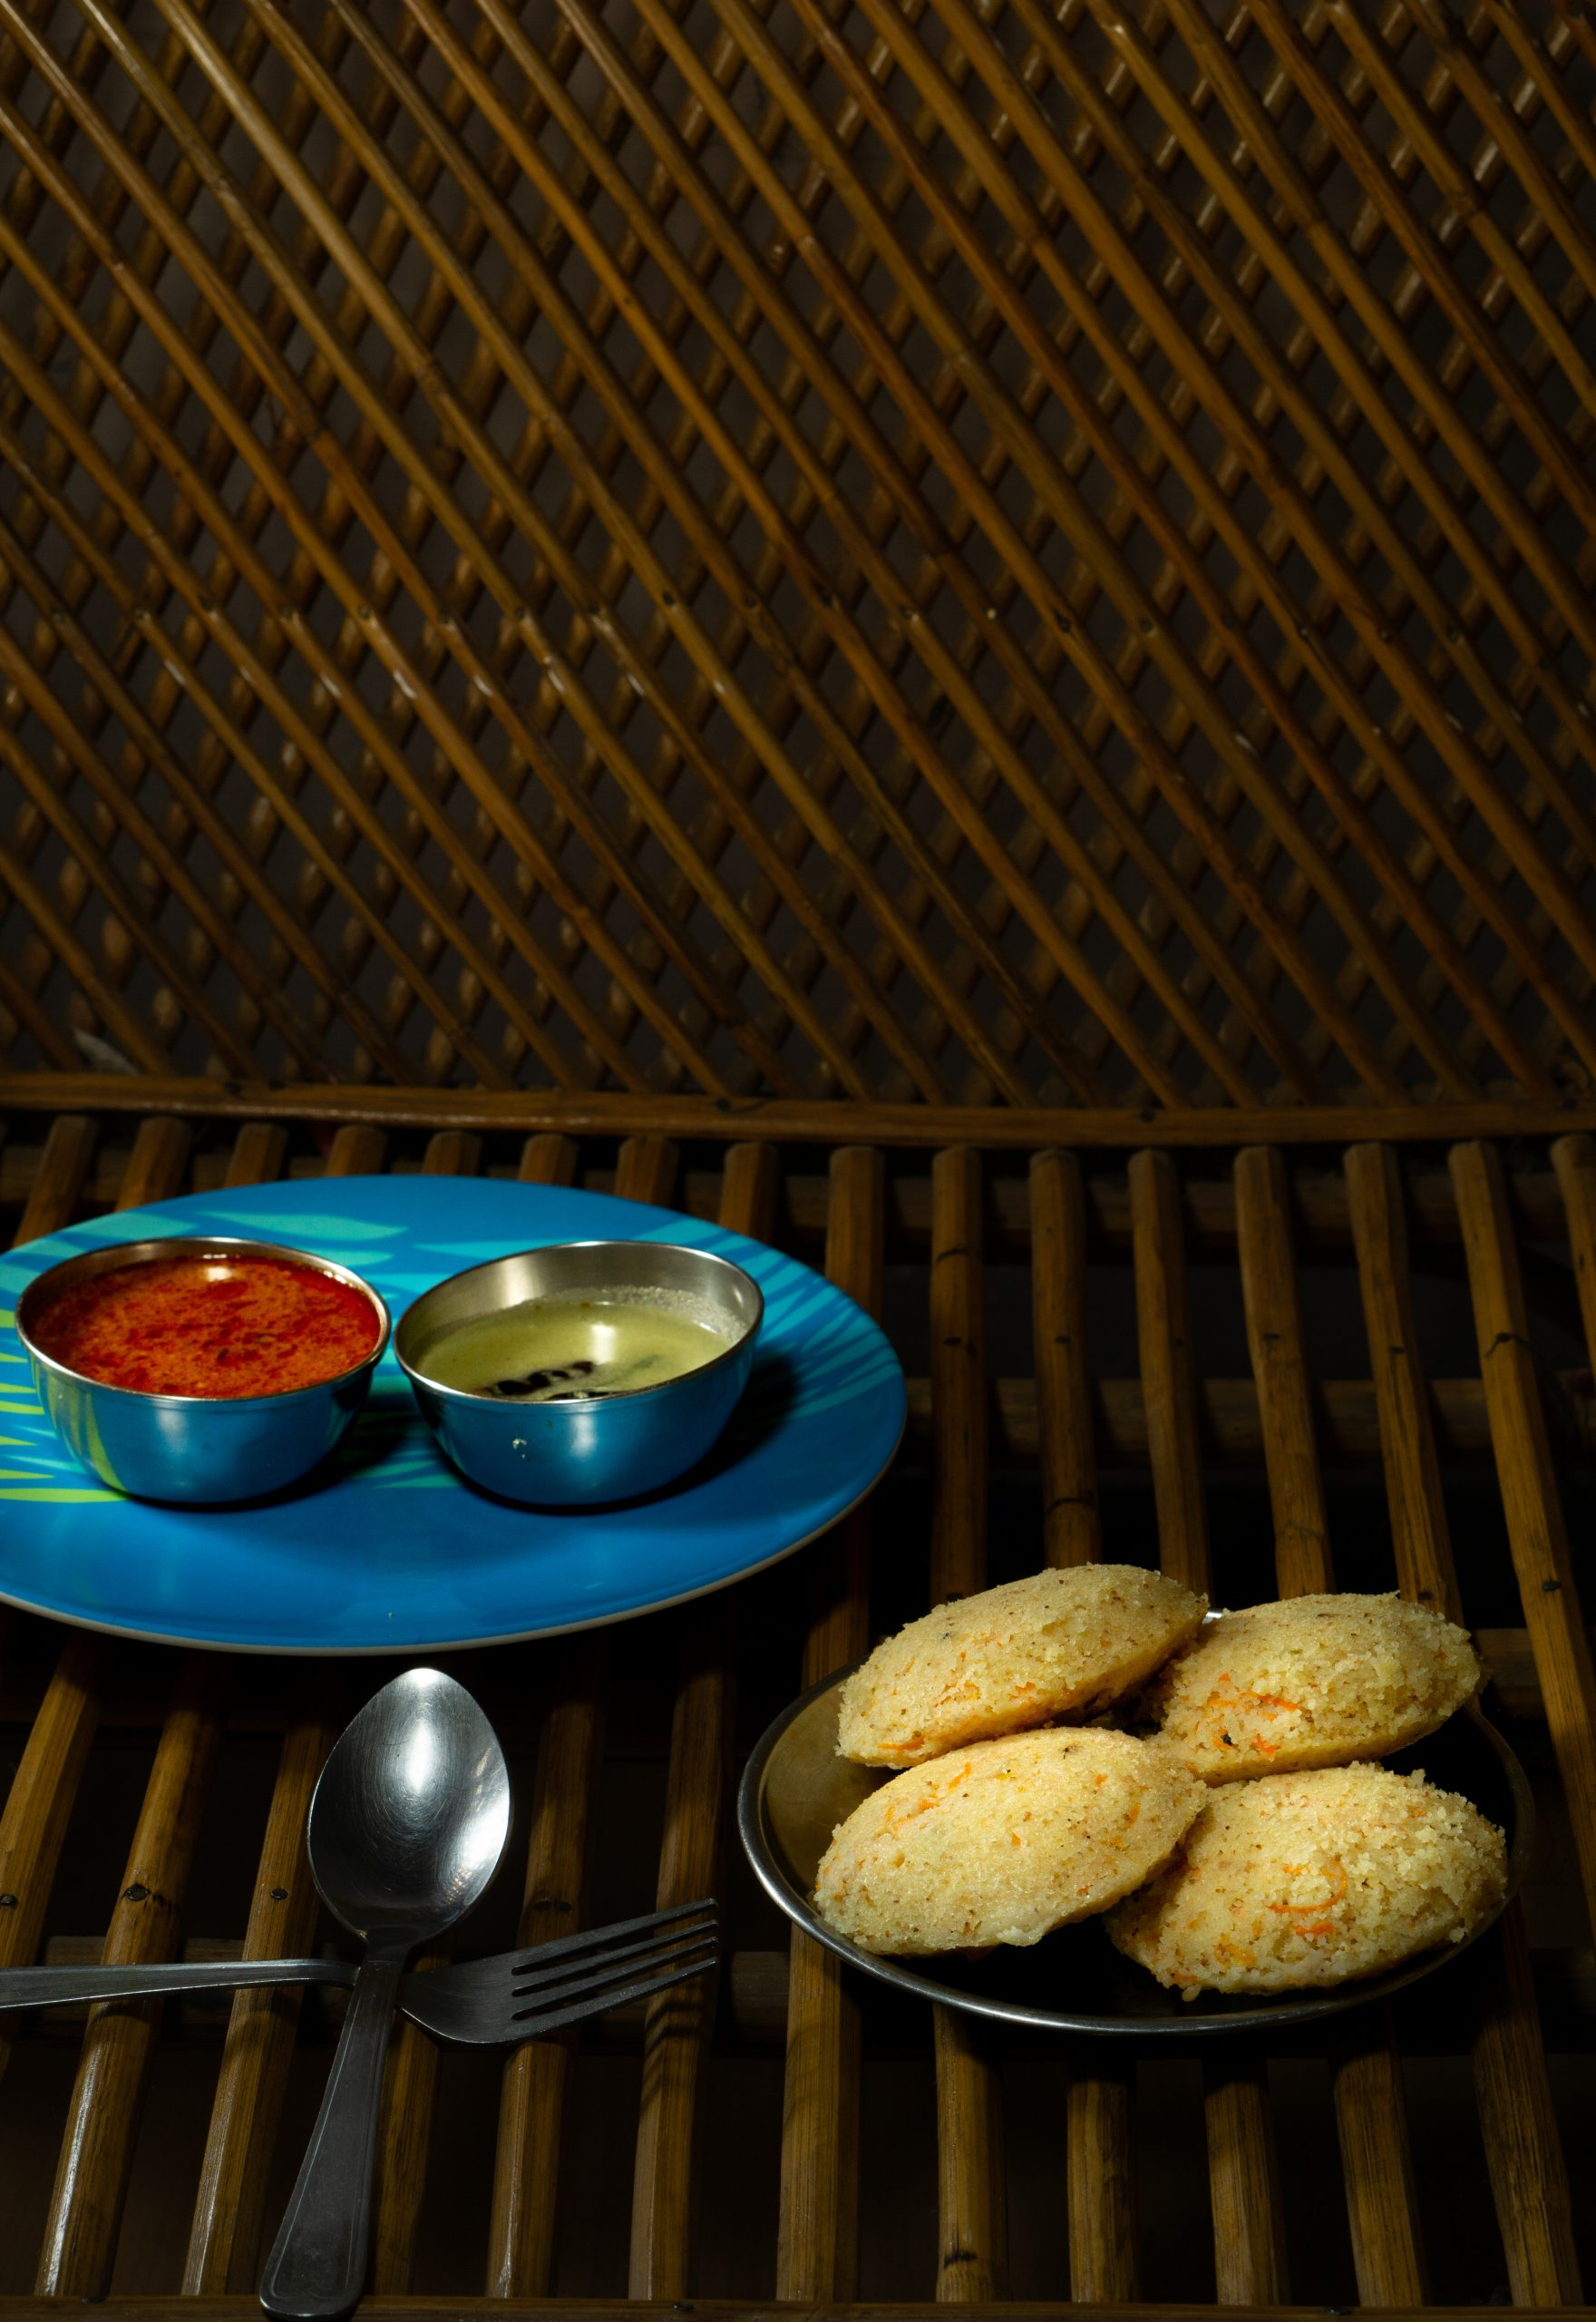 idli and chutney